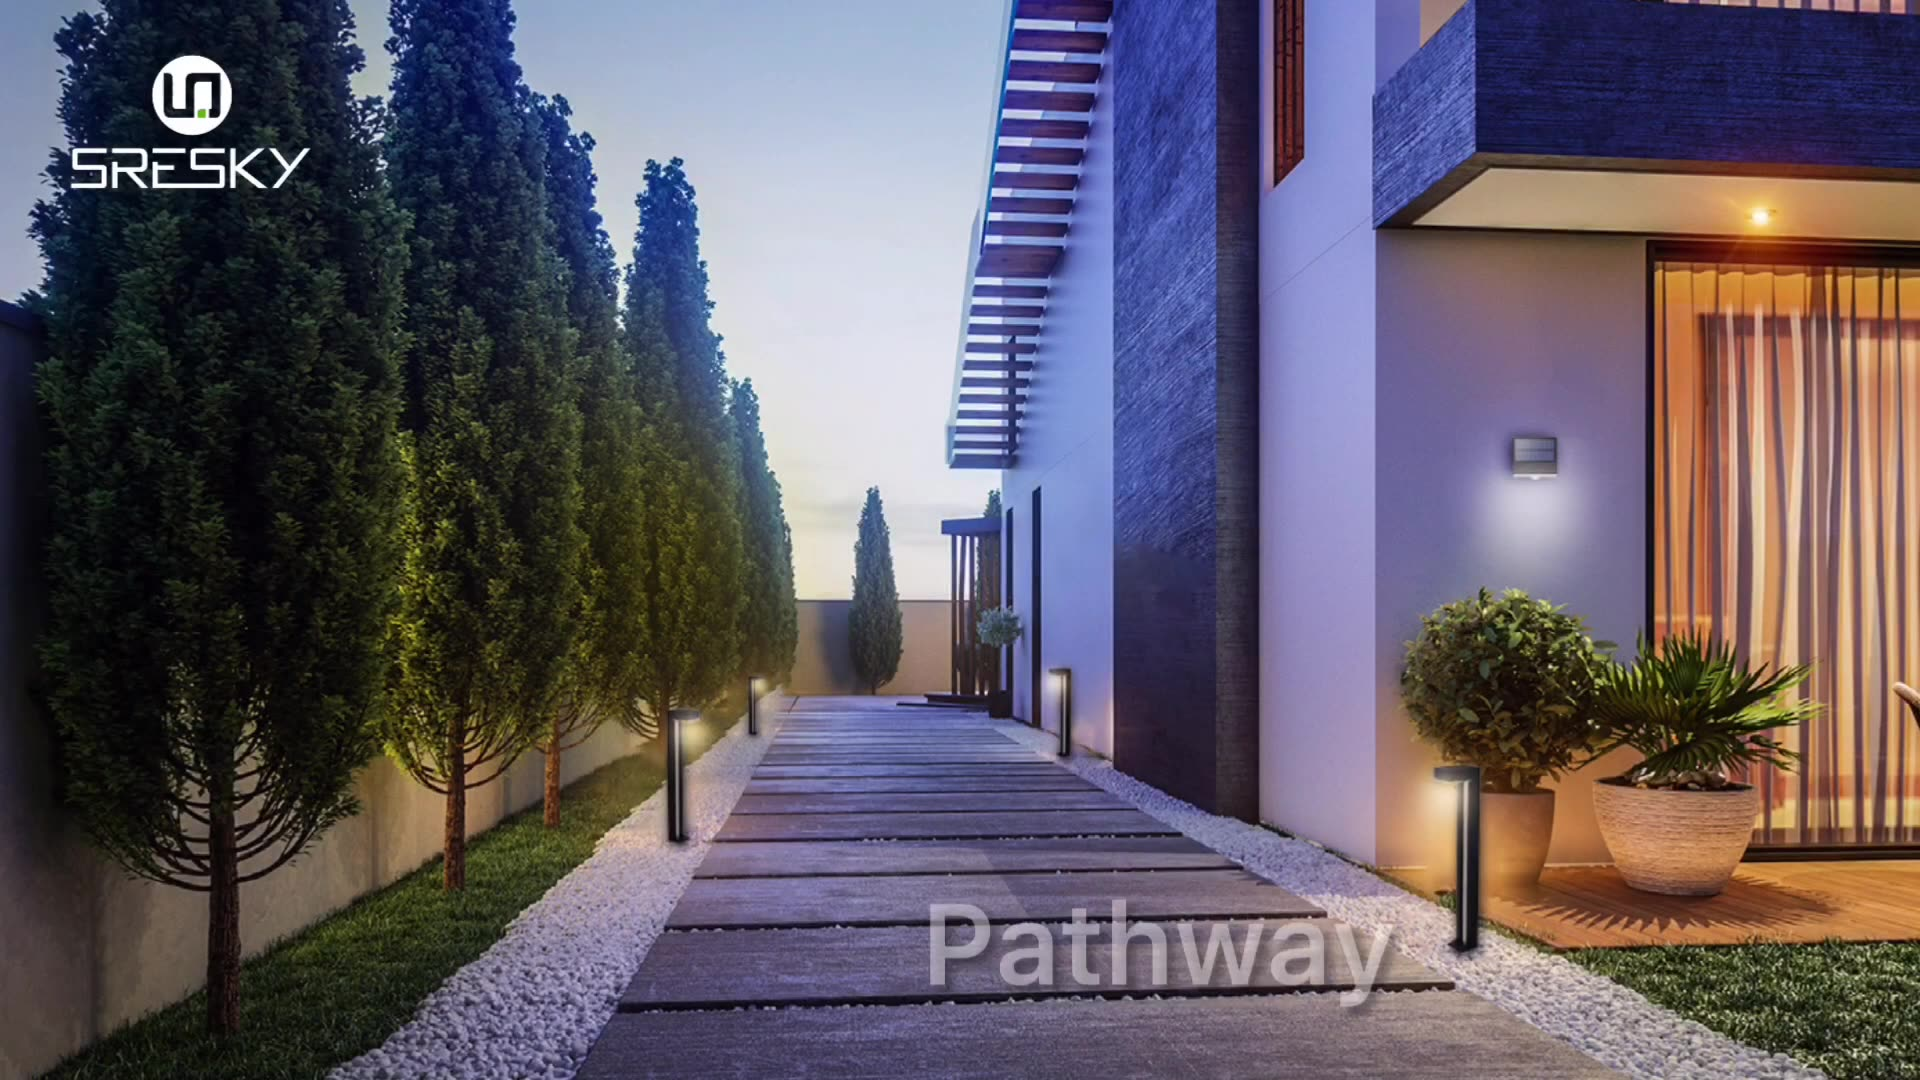 2020 New product lampadaire solaire led lawn light solar panel garden